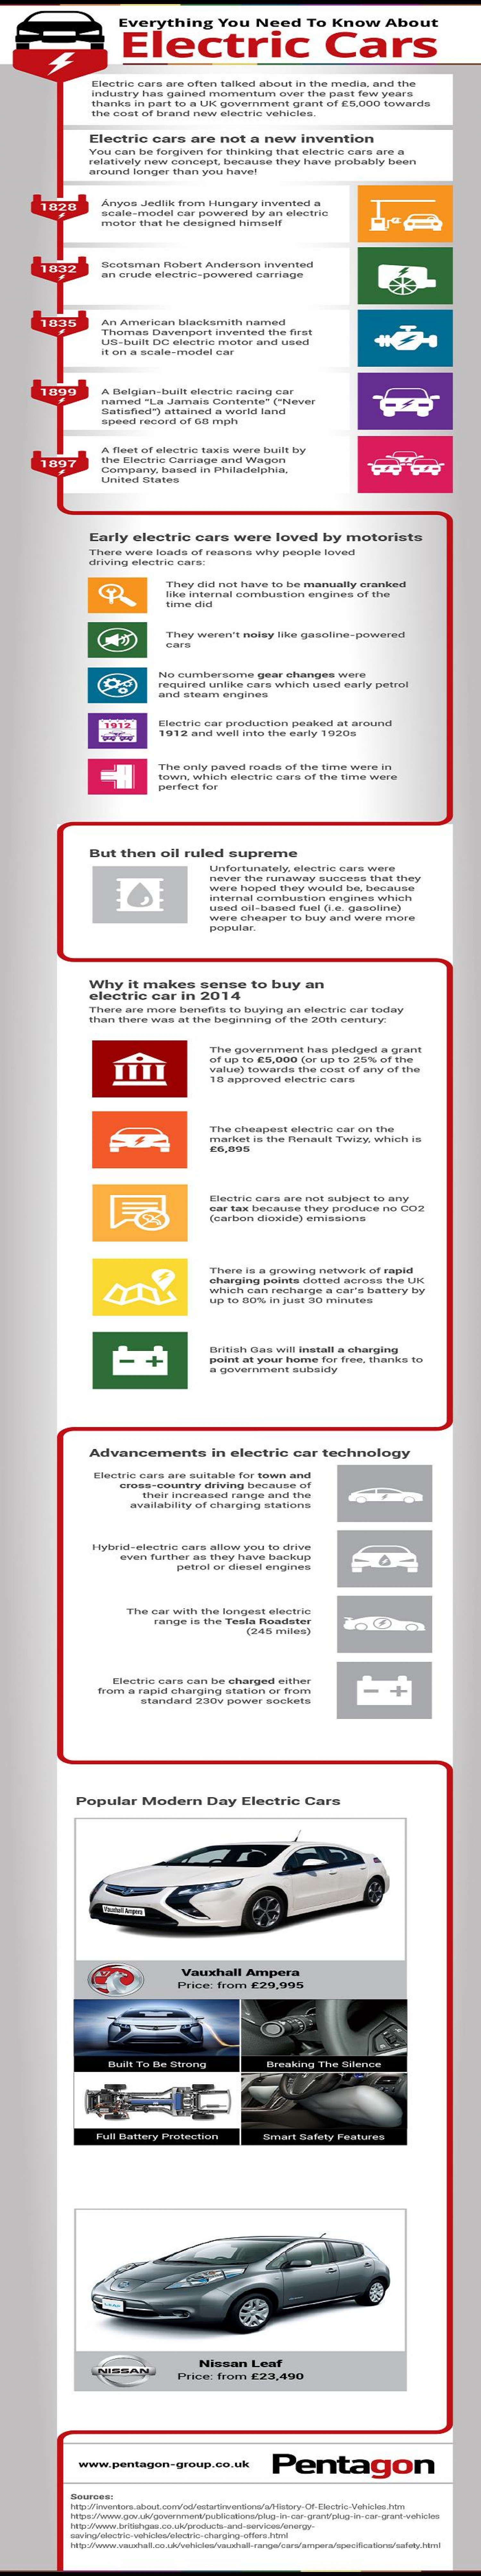 Everything You Need To Know About Electric Cars Infographic